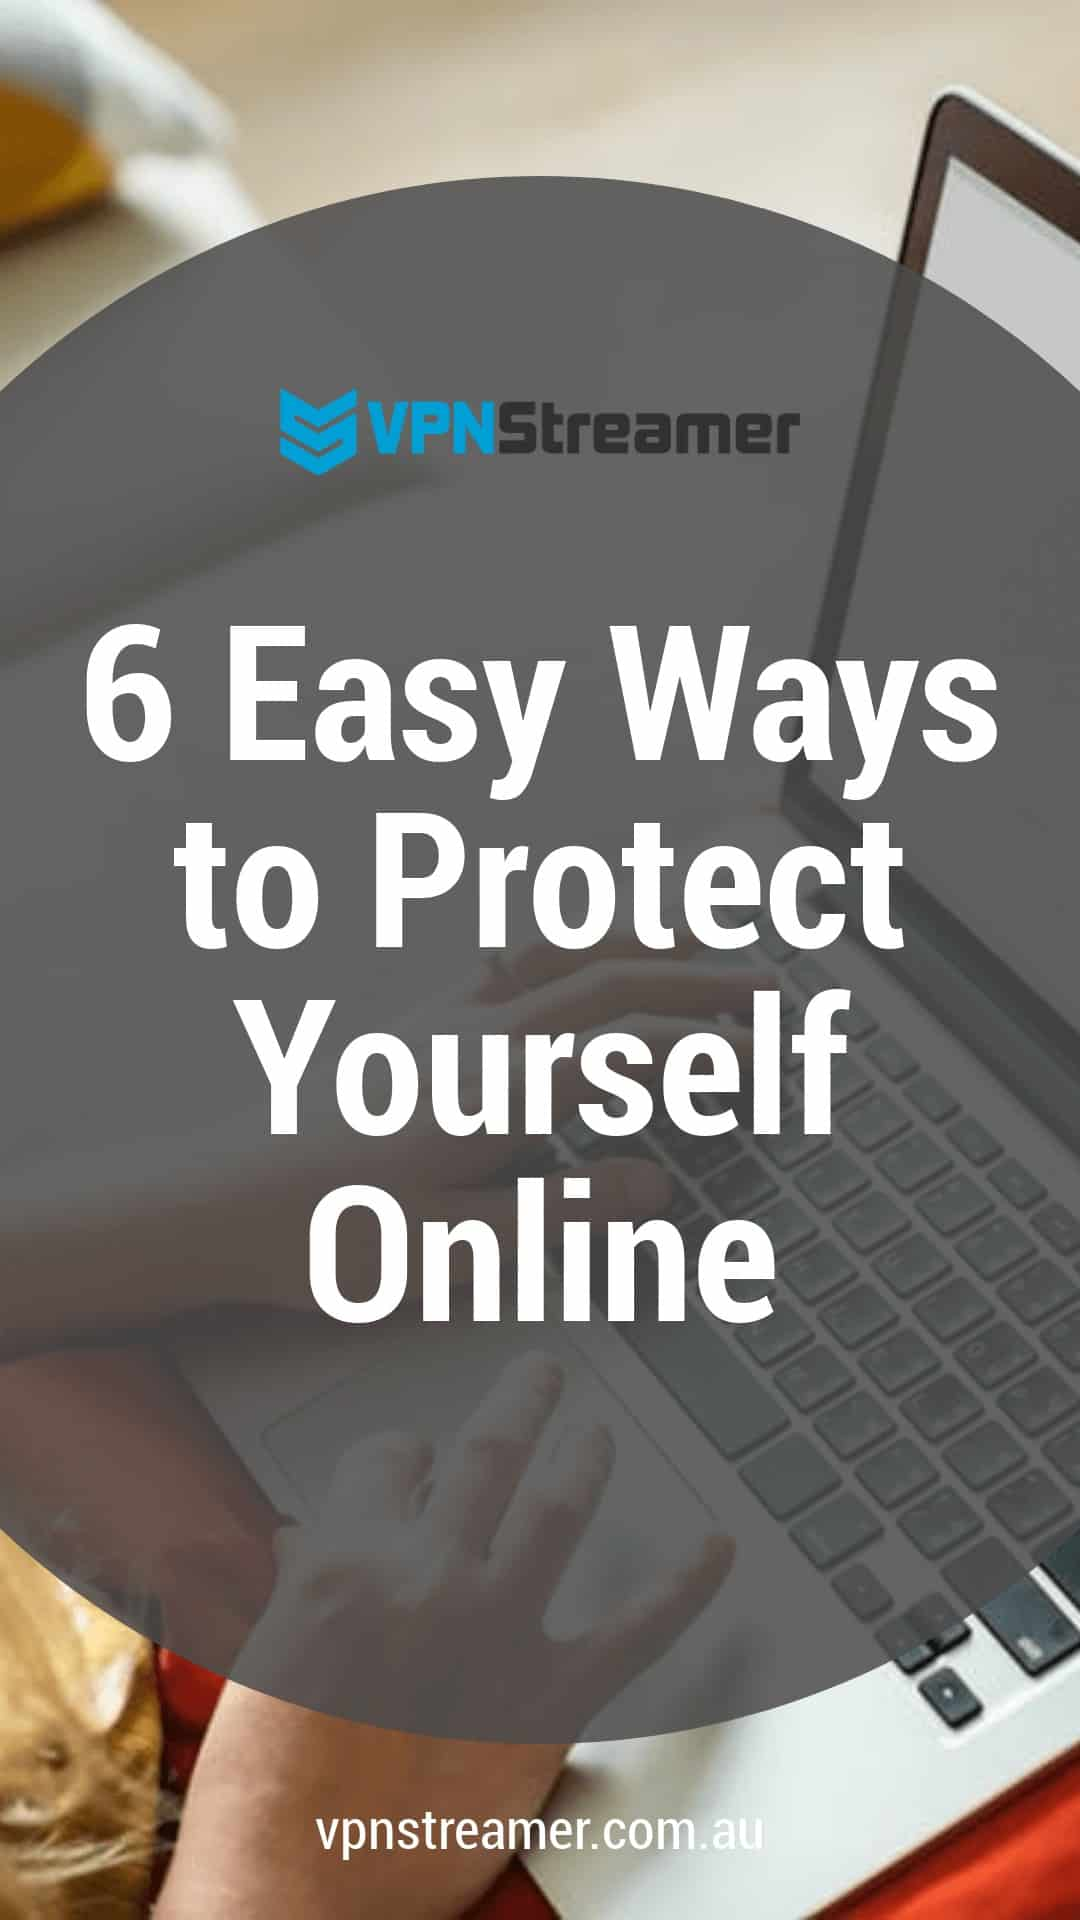 6 Easy Ways to Protect Yourself Online